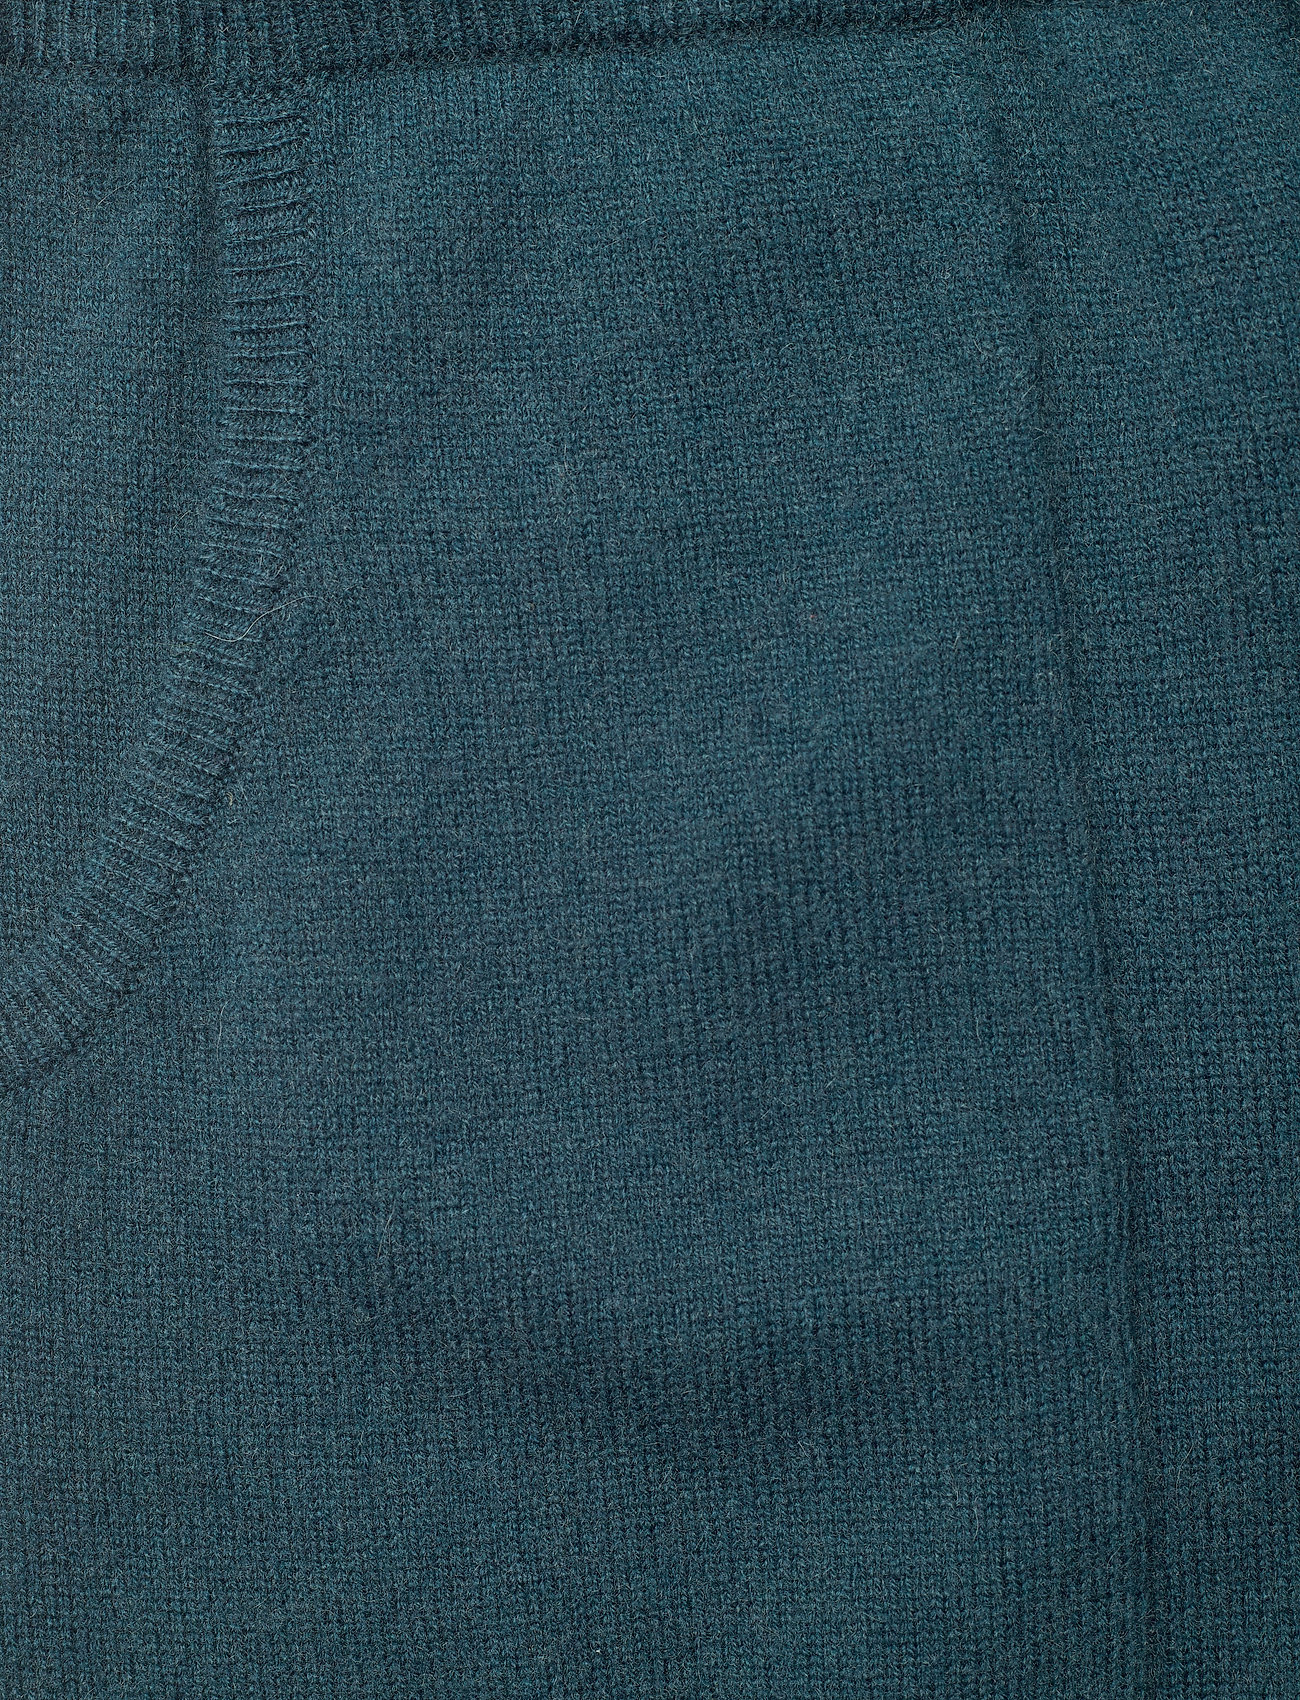 Andiata - Christie knit joggers - kleidung - teal green - 5